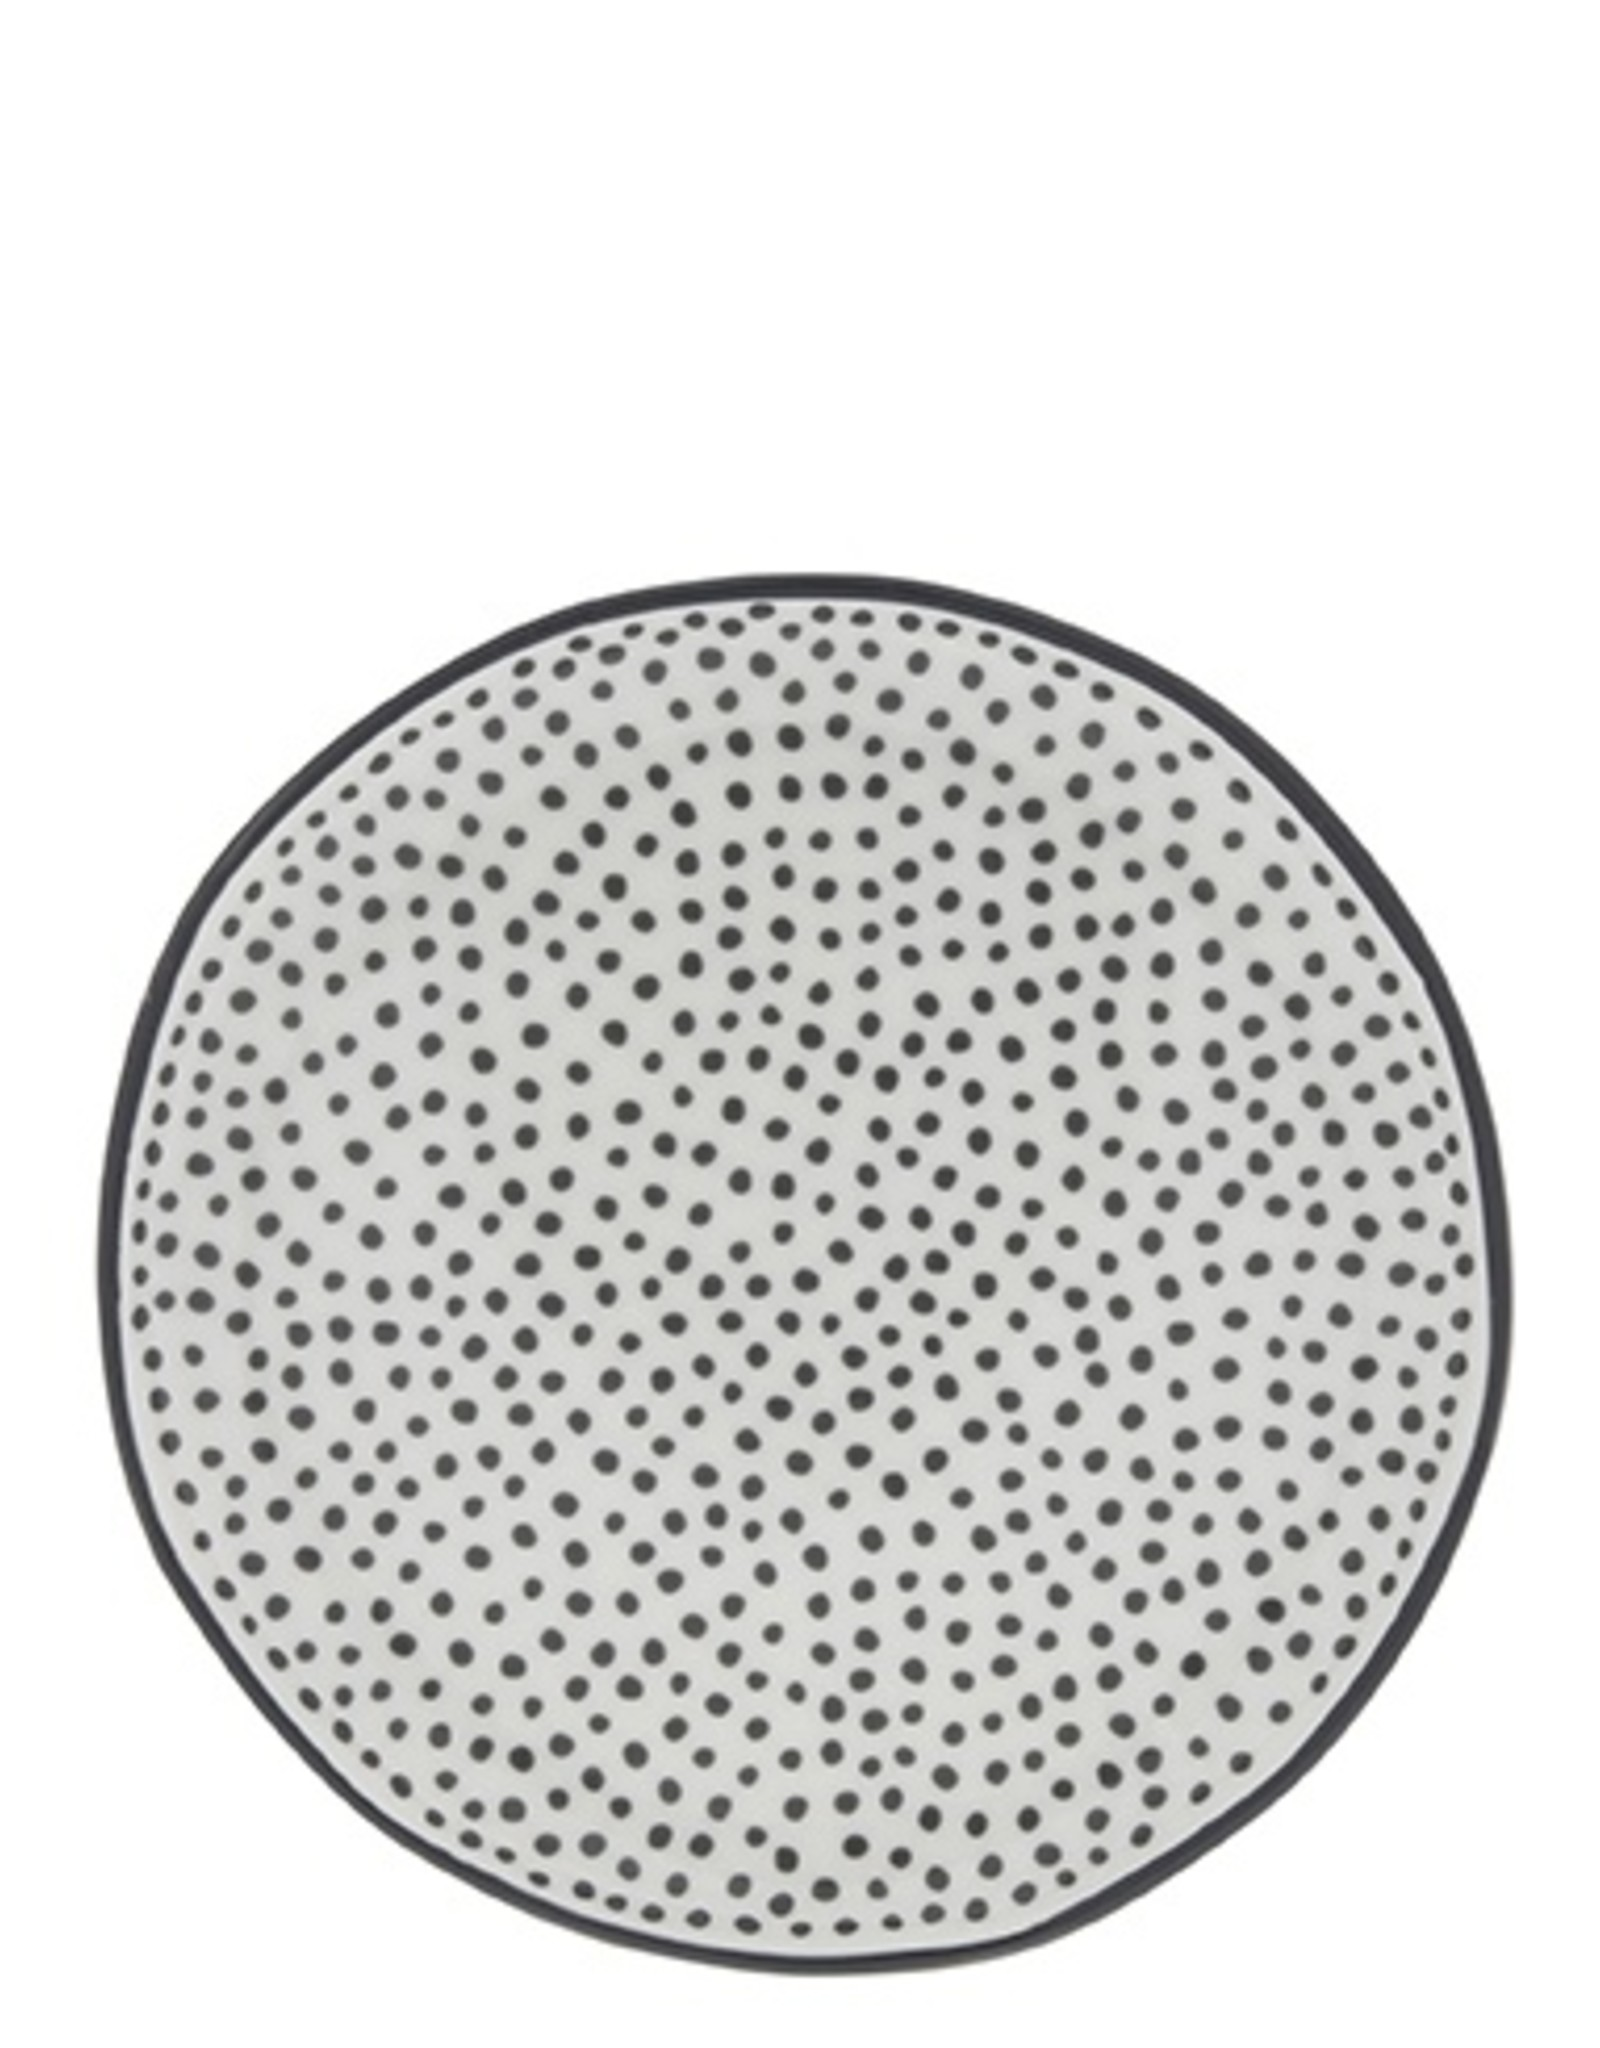 Bastion Collections Taartbord 16cm White   Little Dots in Black   Bastion Collections